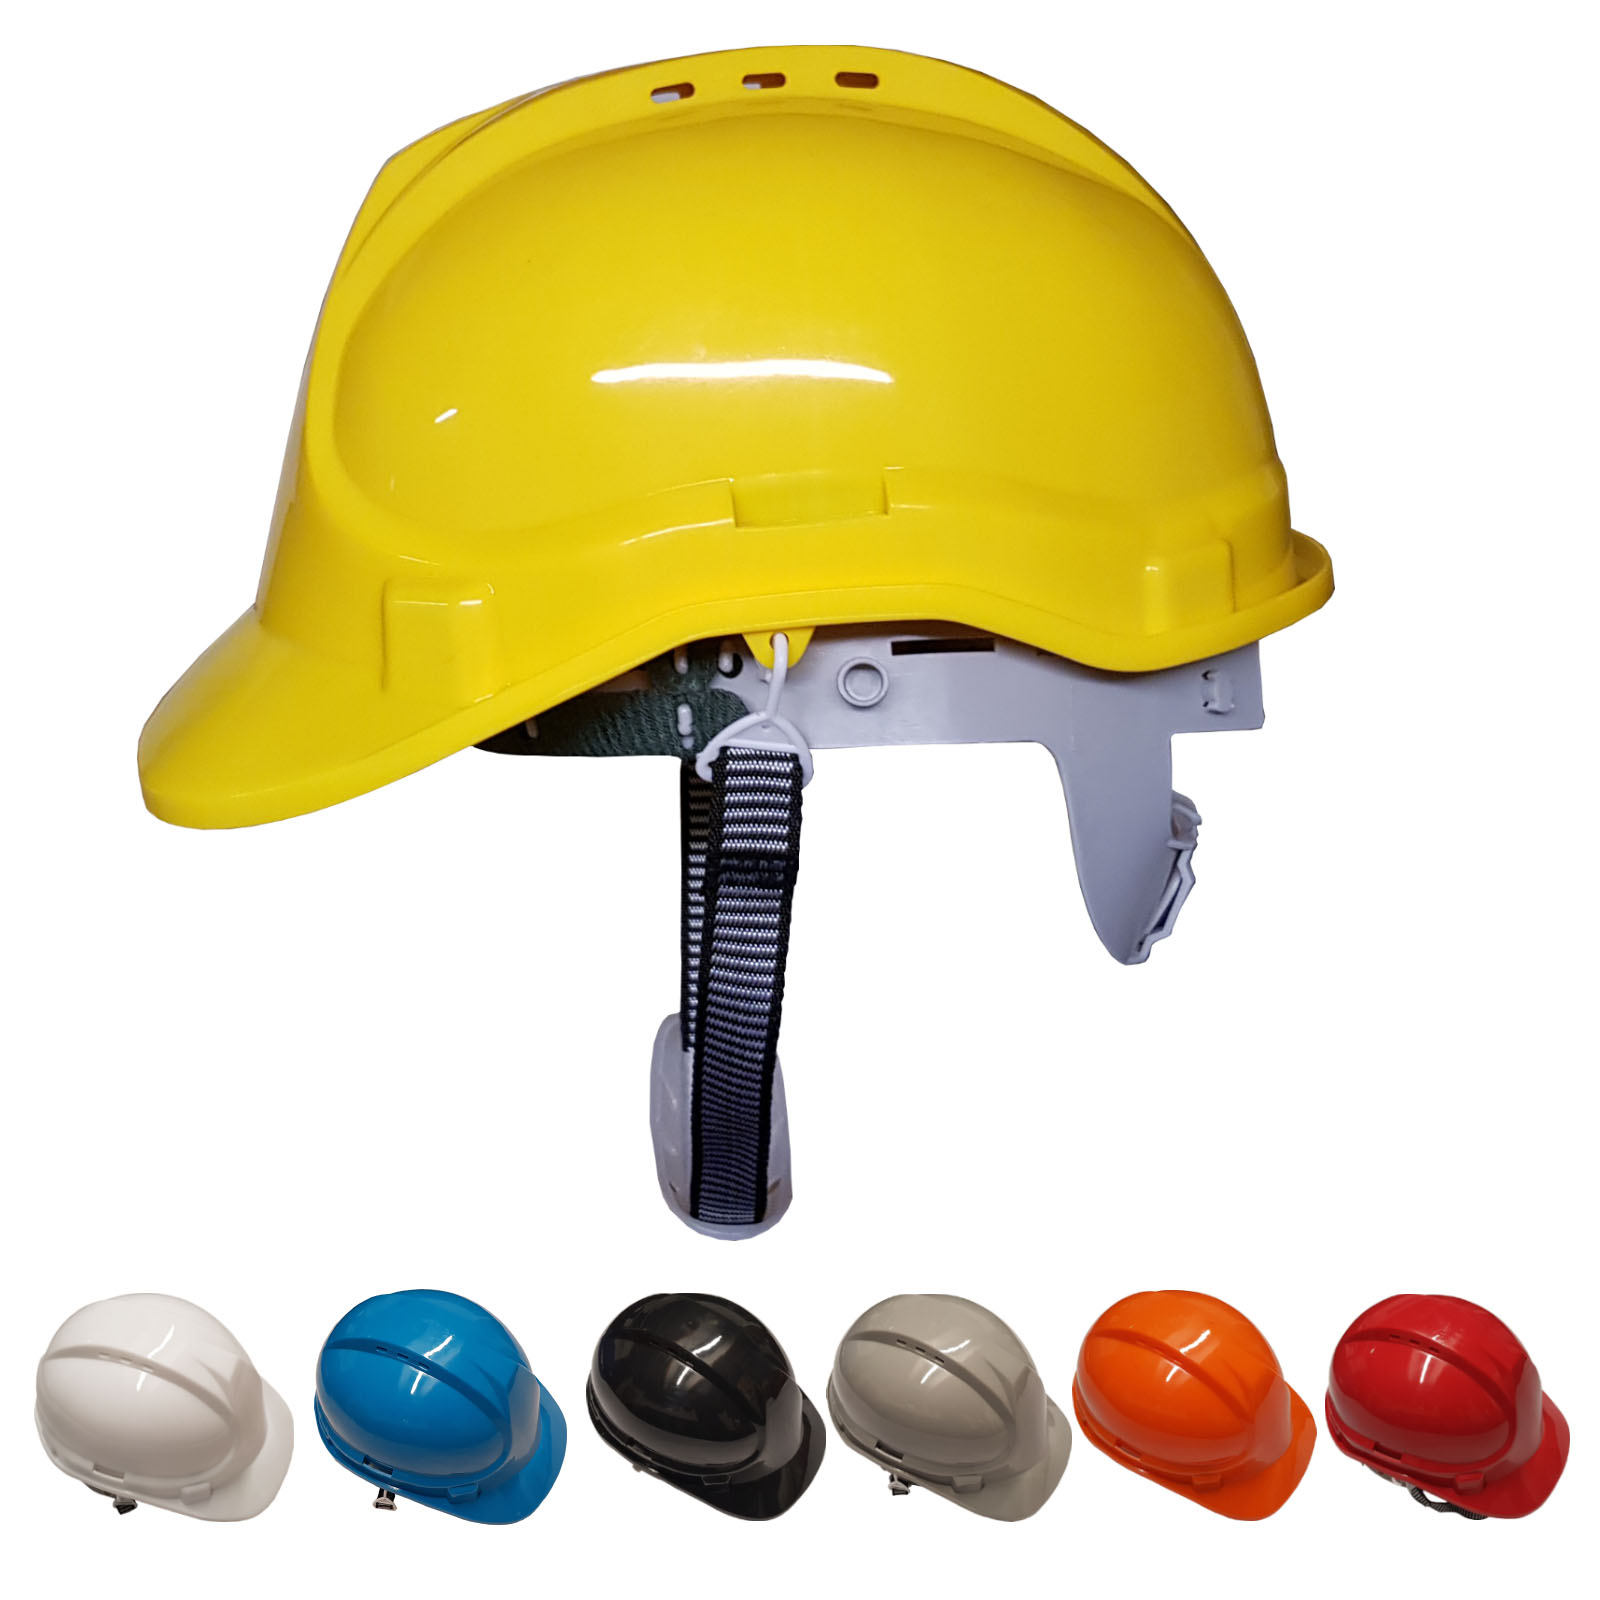 8 Point Safety Helmet Hard Hat Chin Strap – Pin lock